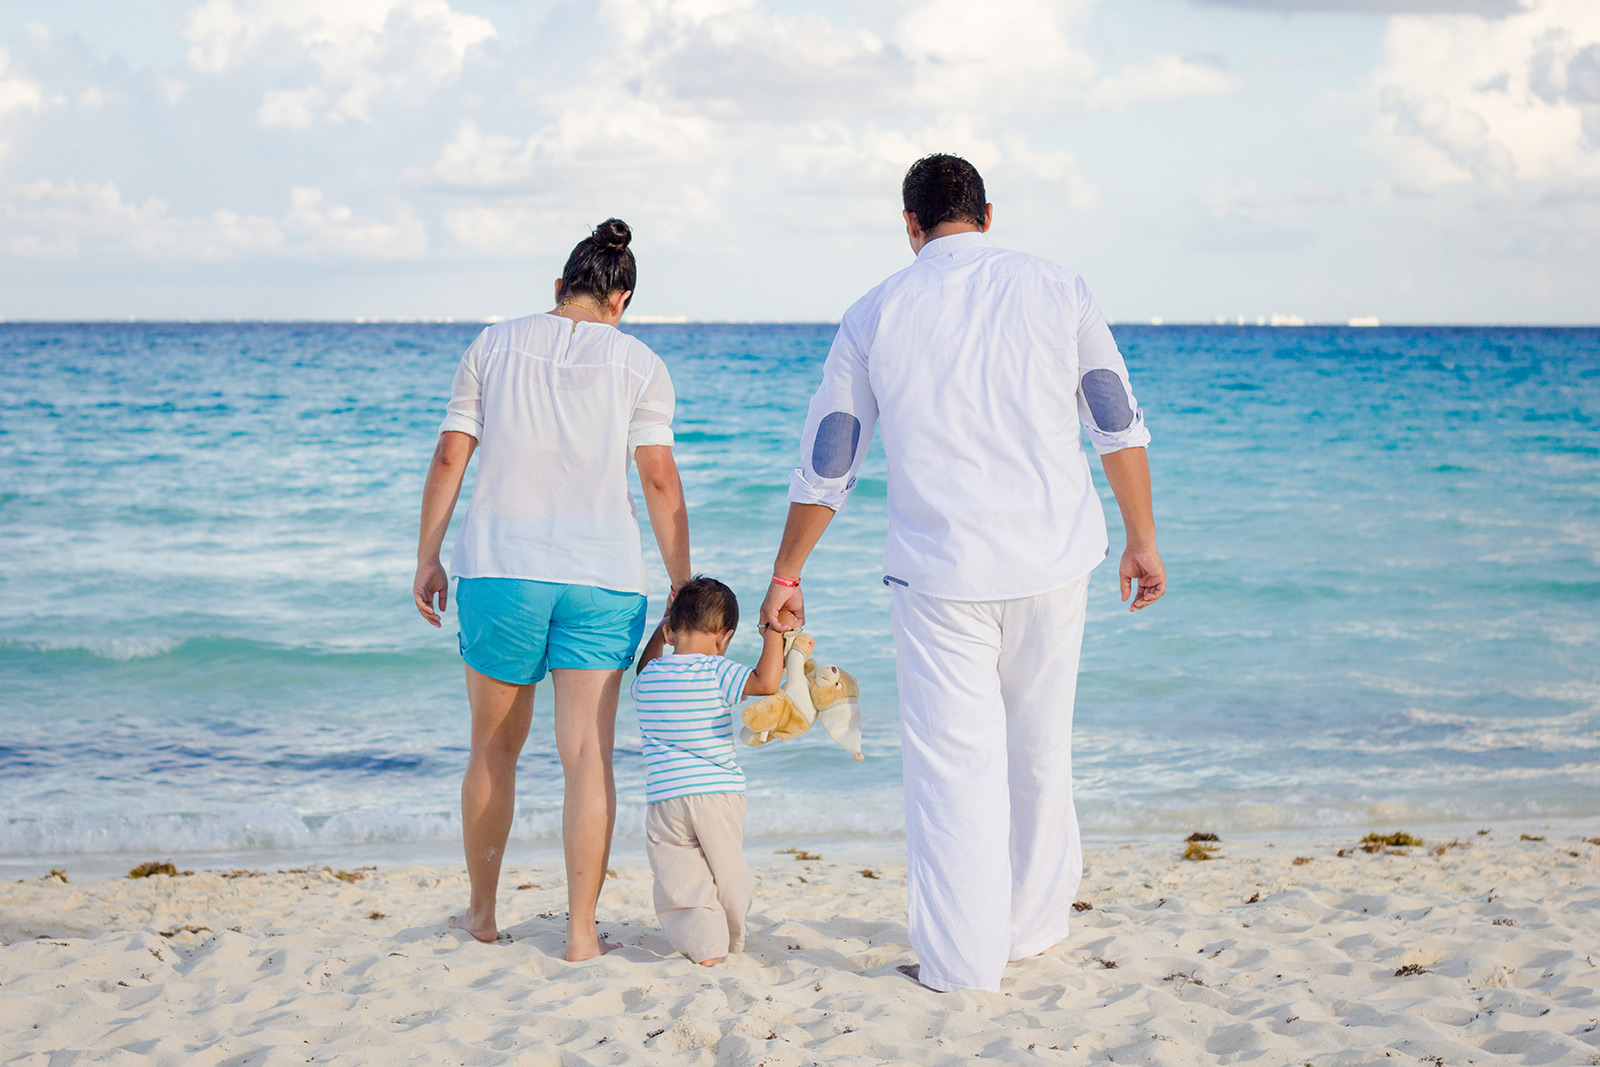 Mother, father, and child walking on beach